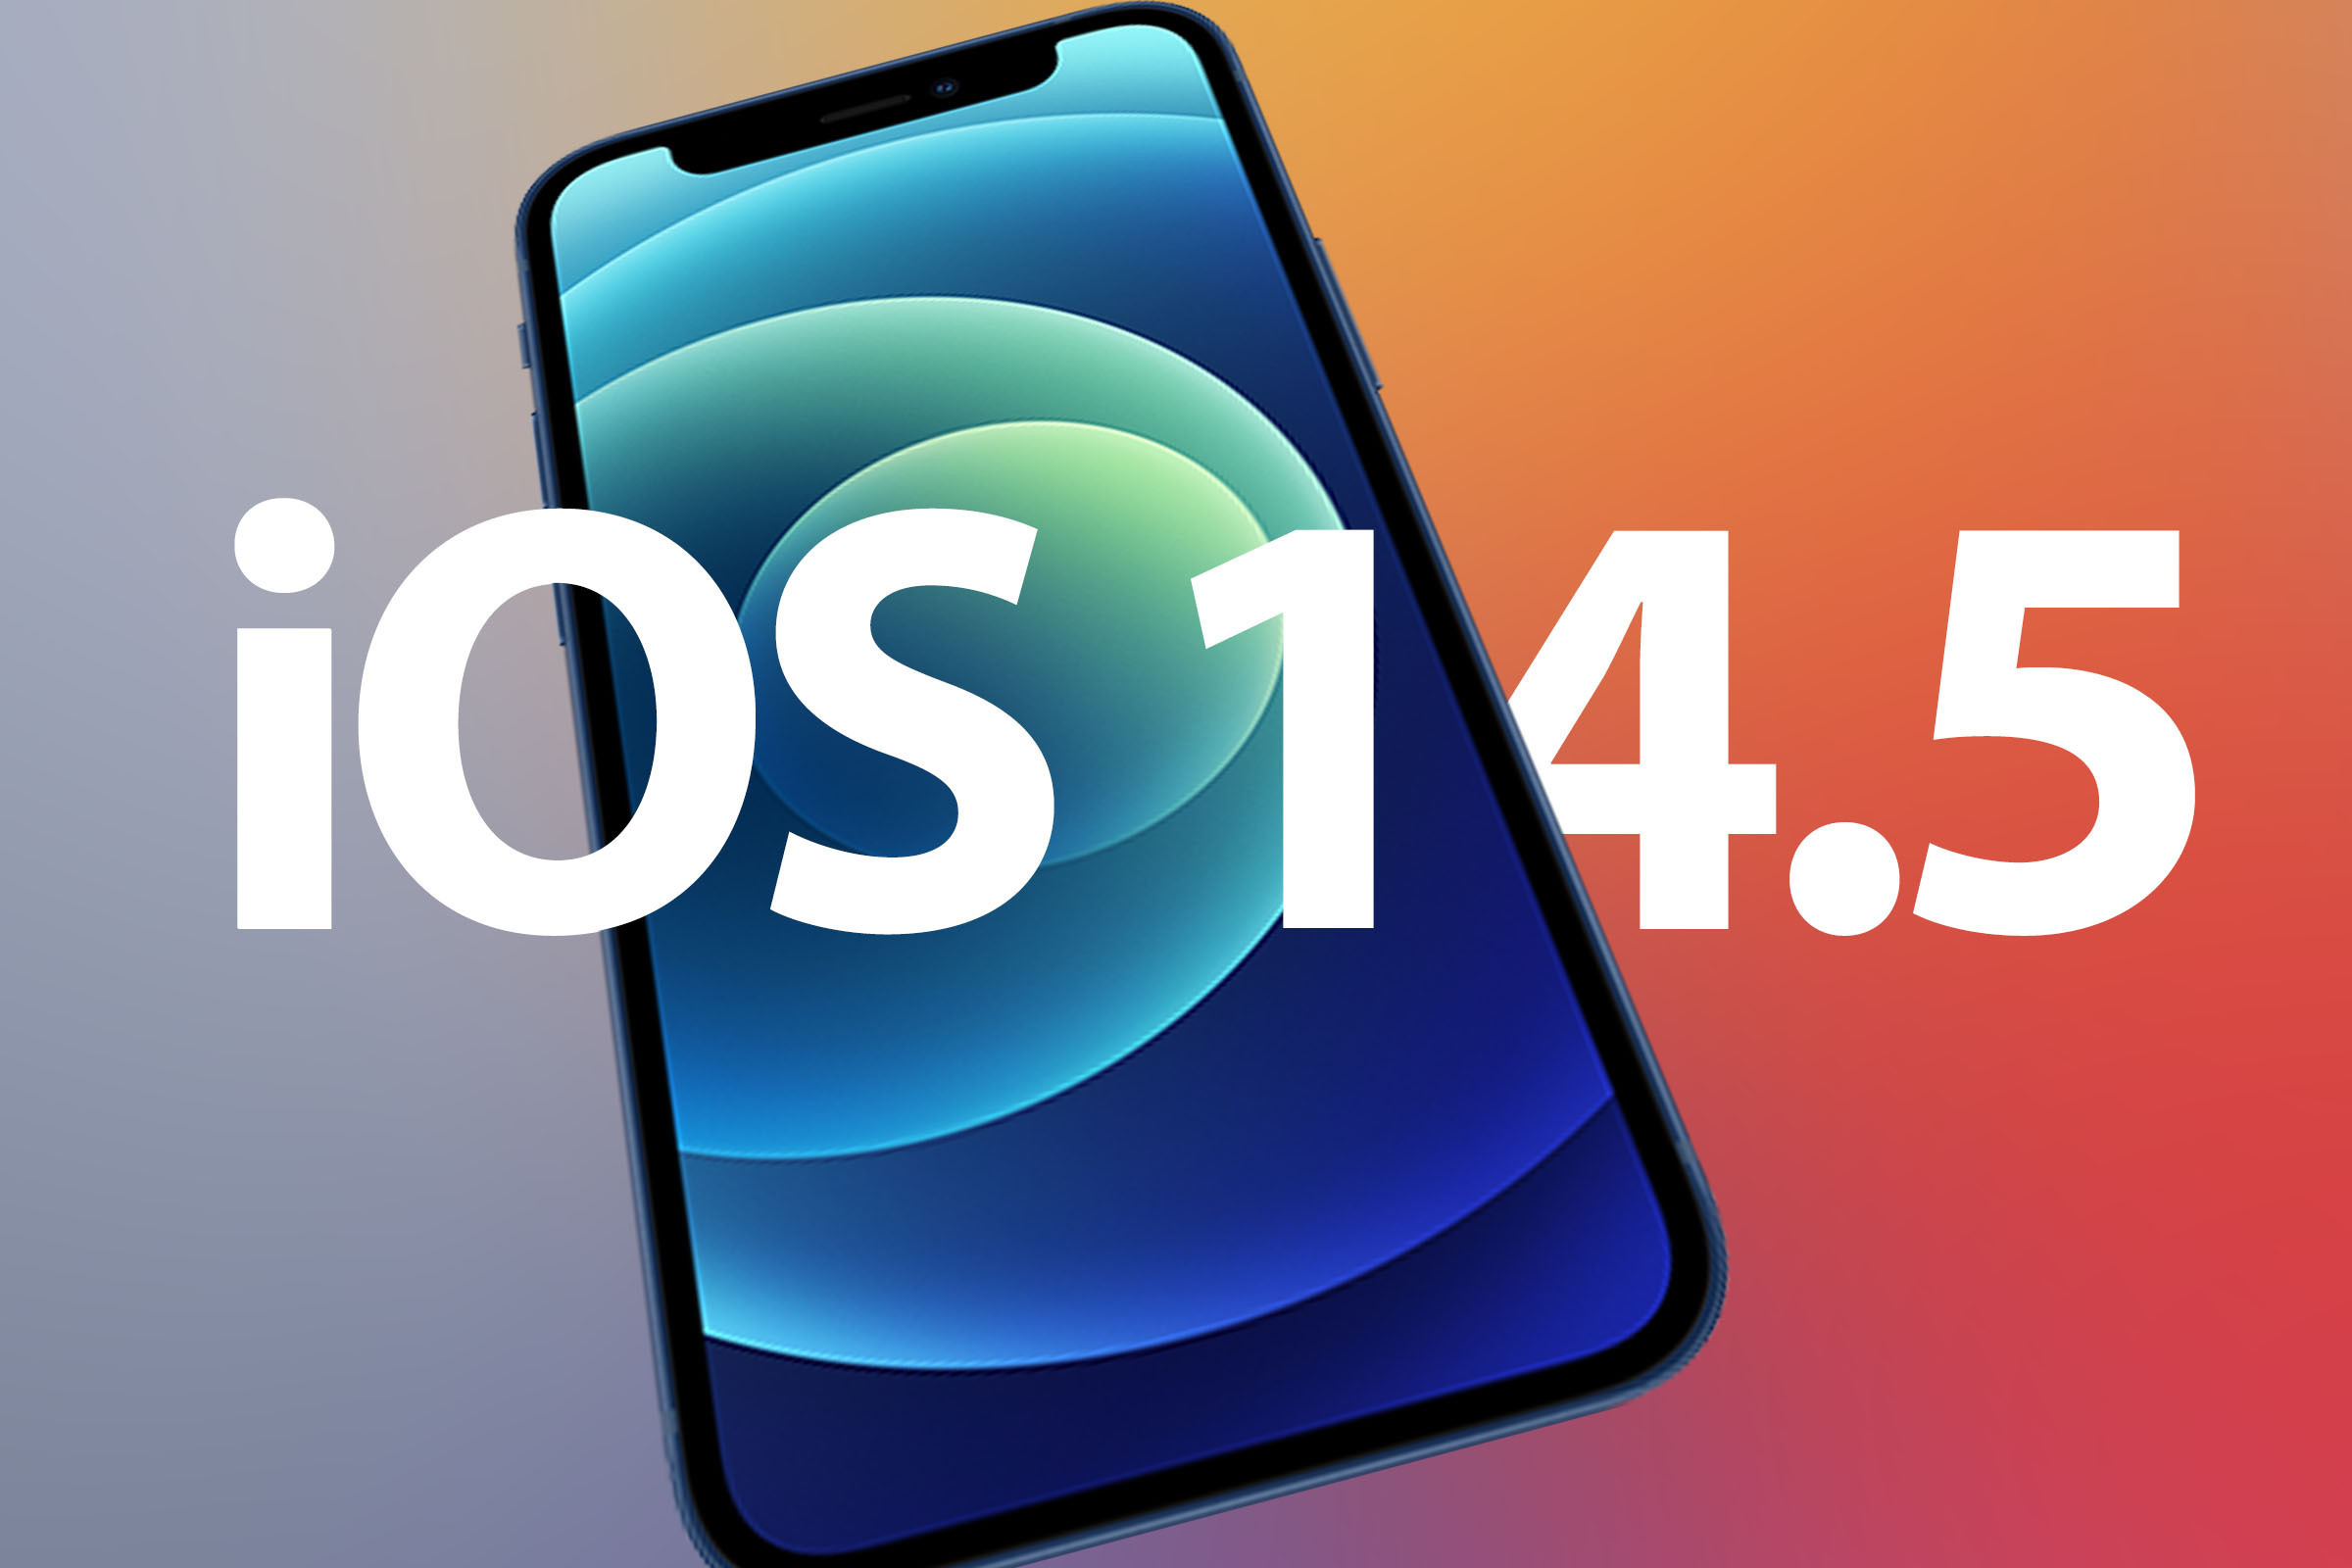 iOS 14.5 features: How app tracking works in new Apple iPhone update – and what else is in the latest version